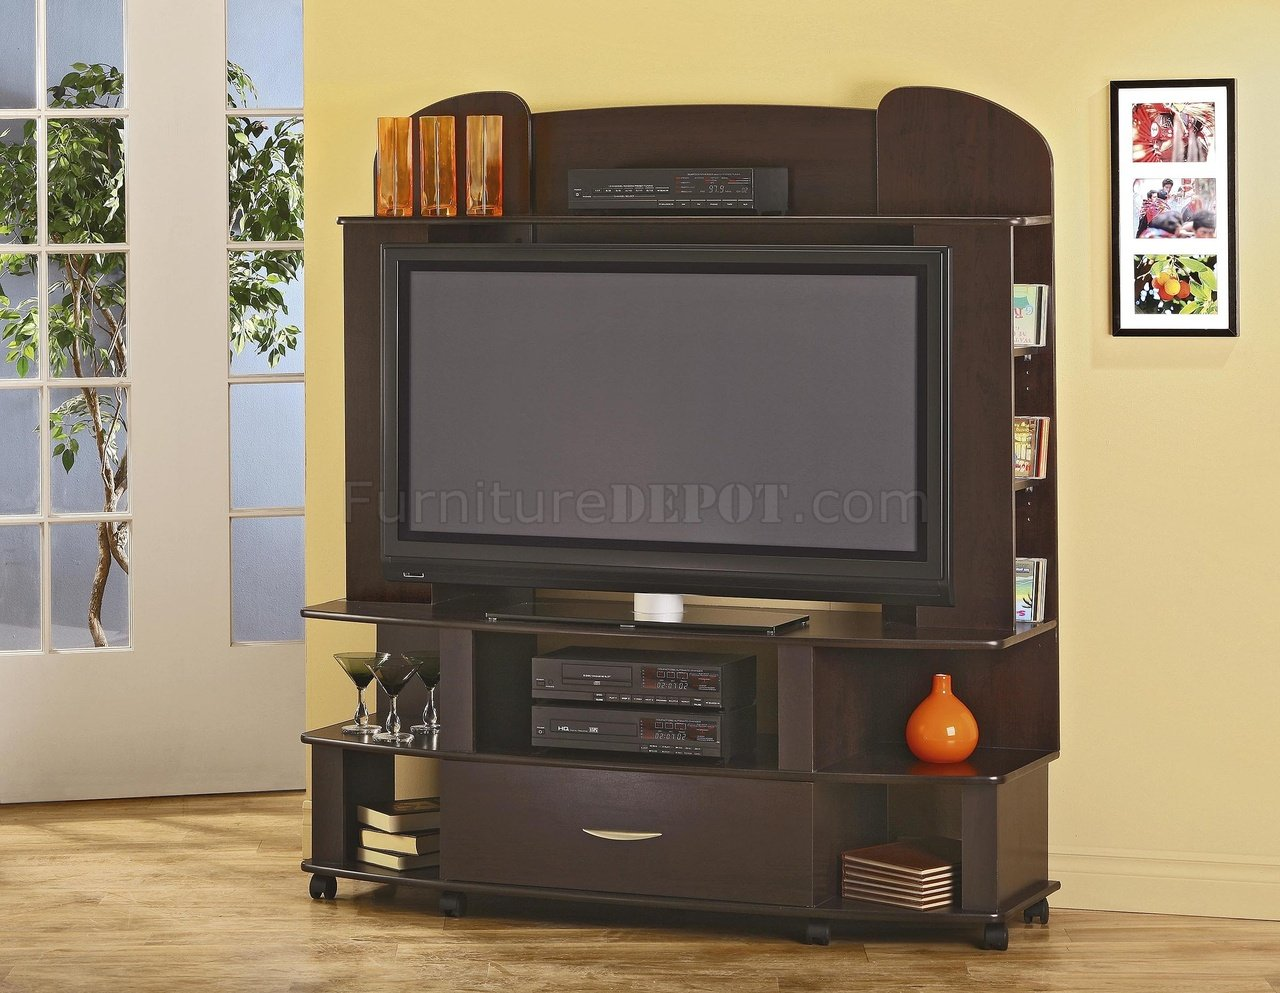 Engrossing Led Lights Entertainment Center Pinterest Cappuccino Finish Entertainment Center Base Entertainment Center houzz 01 Modern Entertainment Center